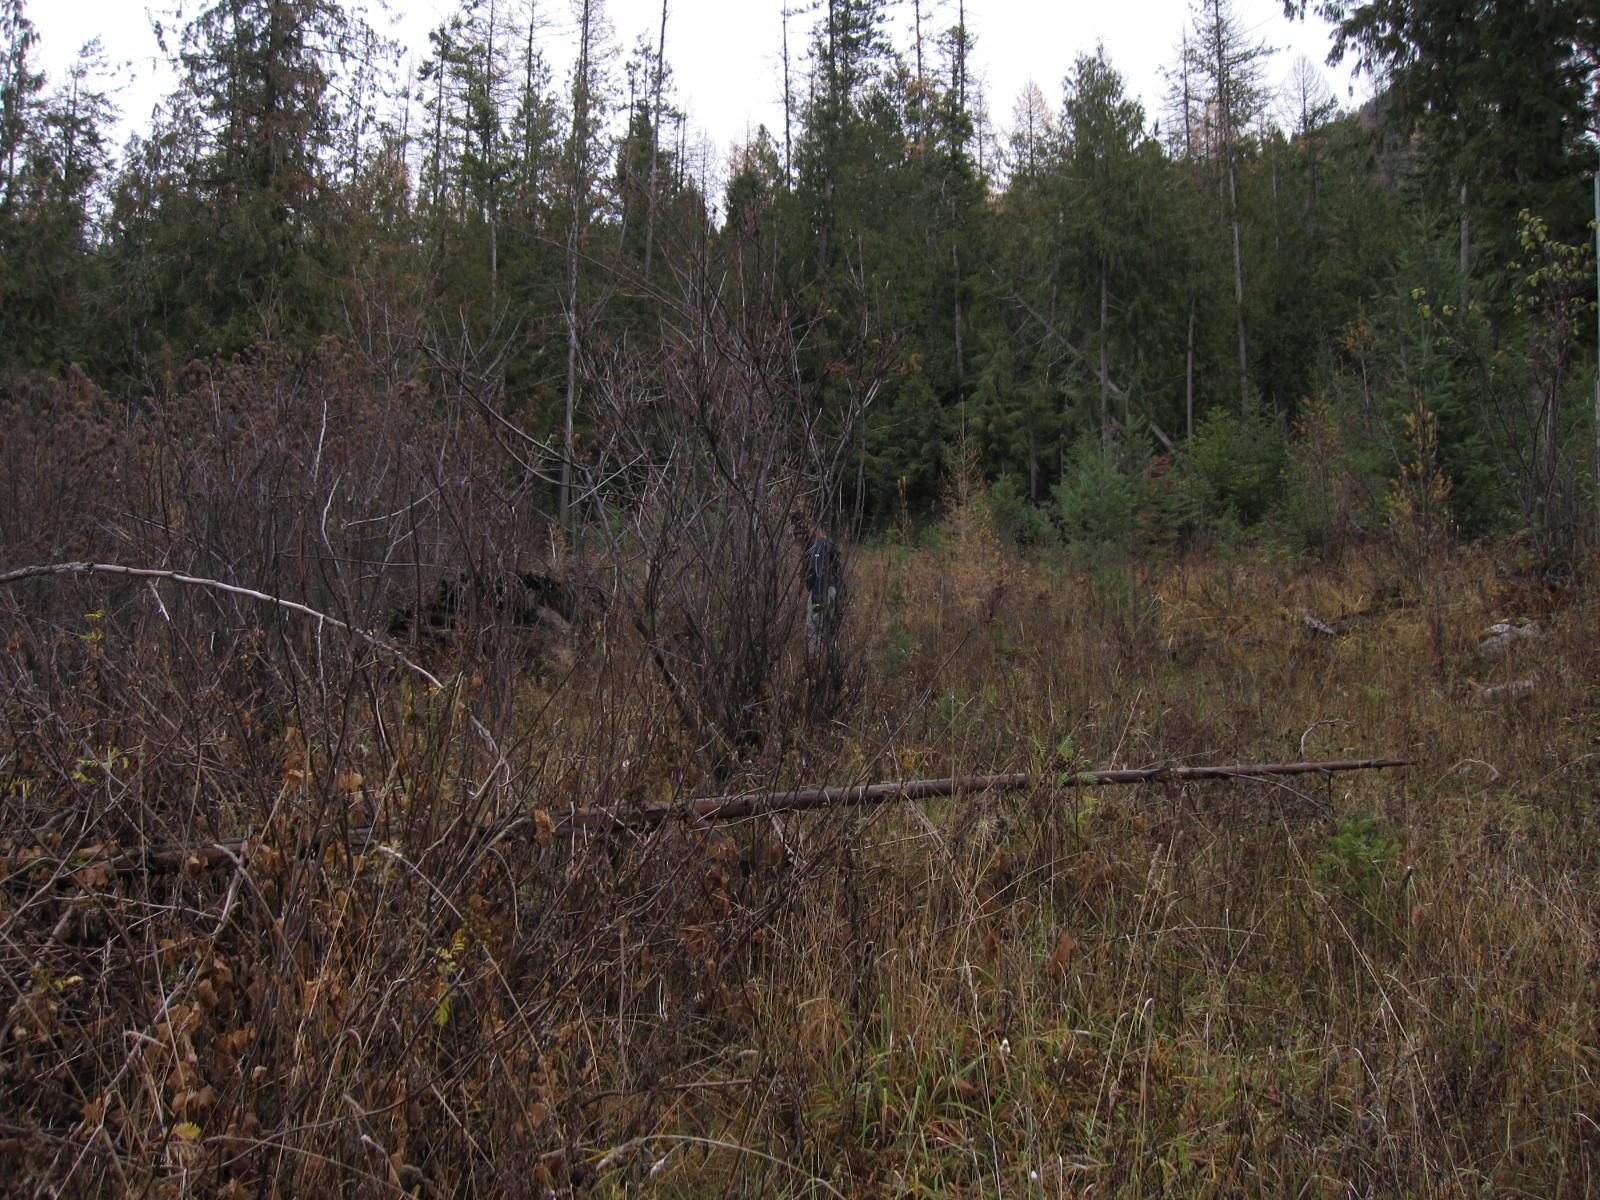 Terreno per Vendita alle ore Four lots bordering Forest Service with a small view of Lake Pend Oreille B3 L1-4 Pend Oreille Ave Bayview, Idaho, 83803 Stati Uniti